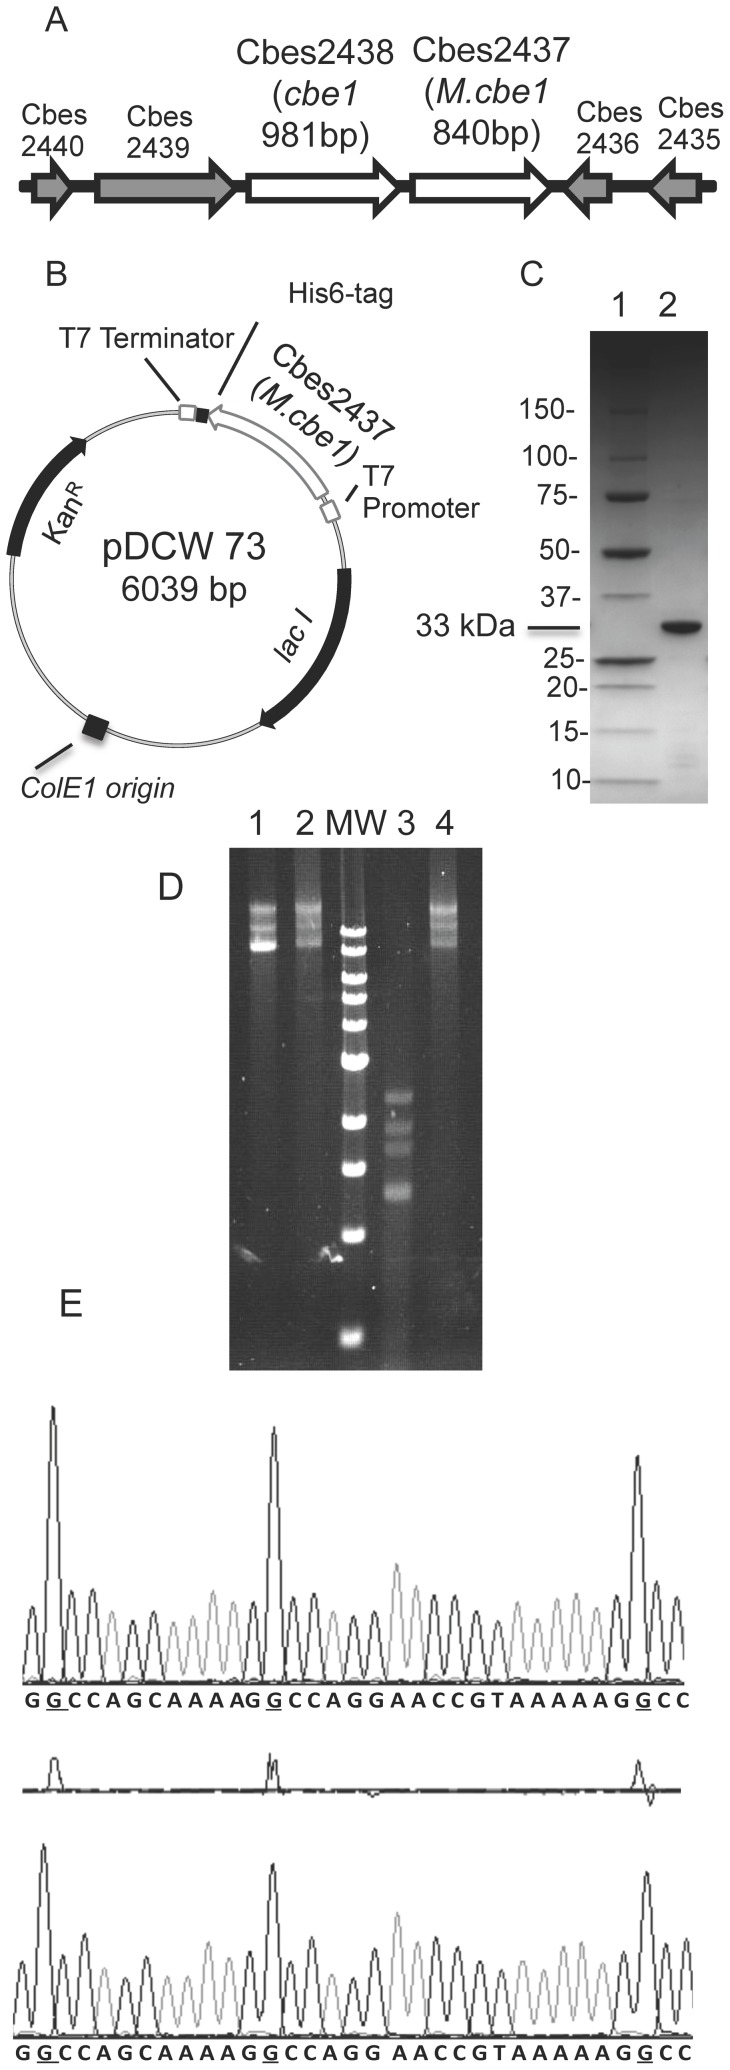 Cloning, expression, purification and partial characterization of M.CbeI. (A) The region of the C. bescii chromosome containing CbeI and M.CbeI. (B) Diagram of pDCW73 used to produce a His-tagged version of M.CbeI in E. coli . (C) Purified M.CbeI displayed on a 10–20% Tris-HCl gradient gel (CriterionTM Precast Gel, Bio-Rad Laboratories, Hercules, CA) stained with coomassie blue. lane 1: protein molecular weight standards (BioRad); lane 2: 15 ng of purified M.CbeI protein. (D) lane 1, undigested unmethylated pDCW70; lane 2, undigested M.CbeI methylated pDCW70; lane 3, unmethylated pDCW70 digested with purified CbeI; lane 4, M.CbeI methylated pDCW70 digested with purified CbeI, MW: 1 kb DNA ladder (NEB). (E) DNA sequence traces of DNA methylated with M.CbeI (top panel) or M.HaeIII (bottom panel). Differences in the G residue signals between M.HaeIII and M.CbeI pUC18 are shown in the middle panel.